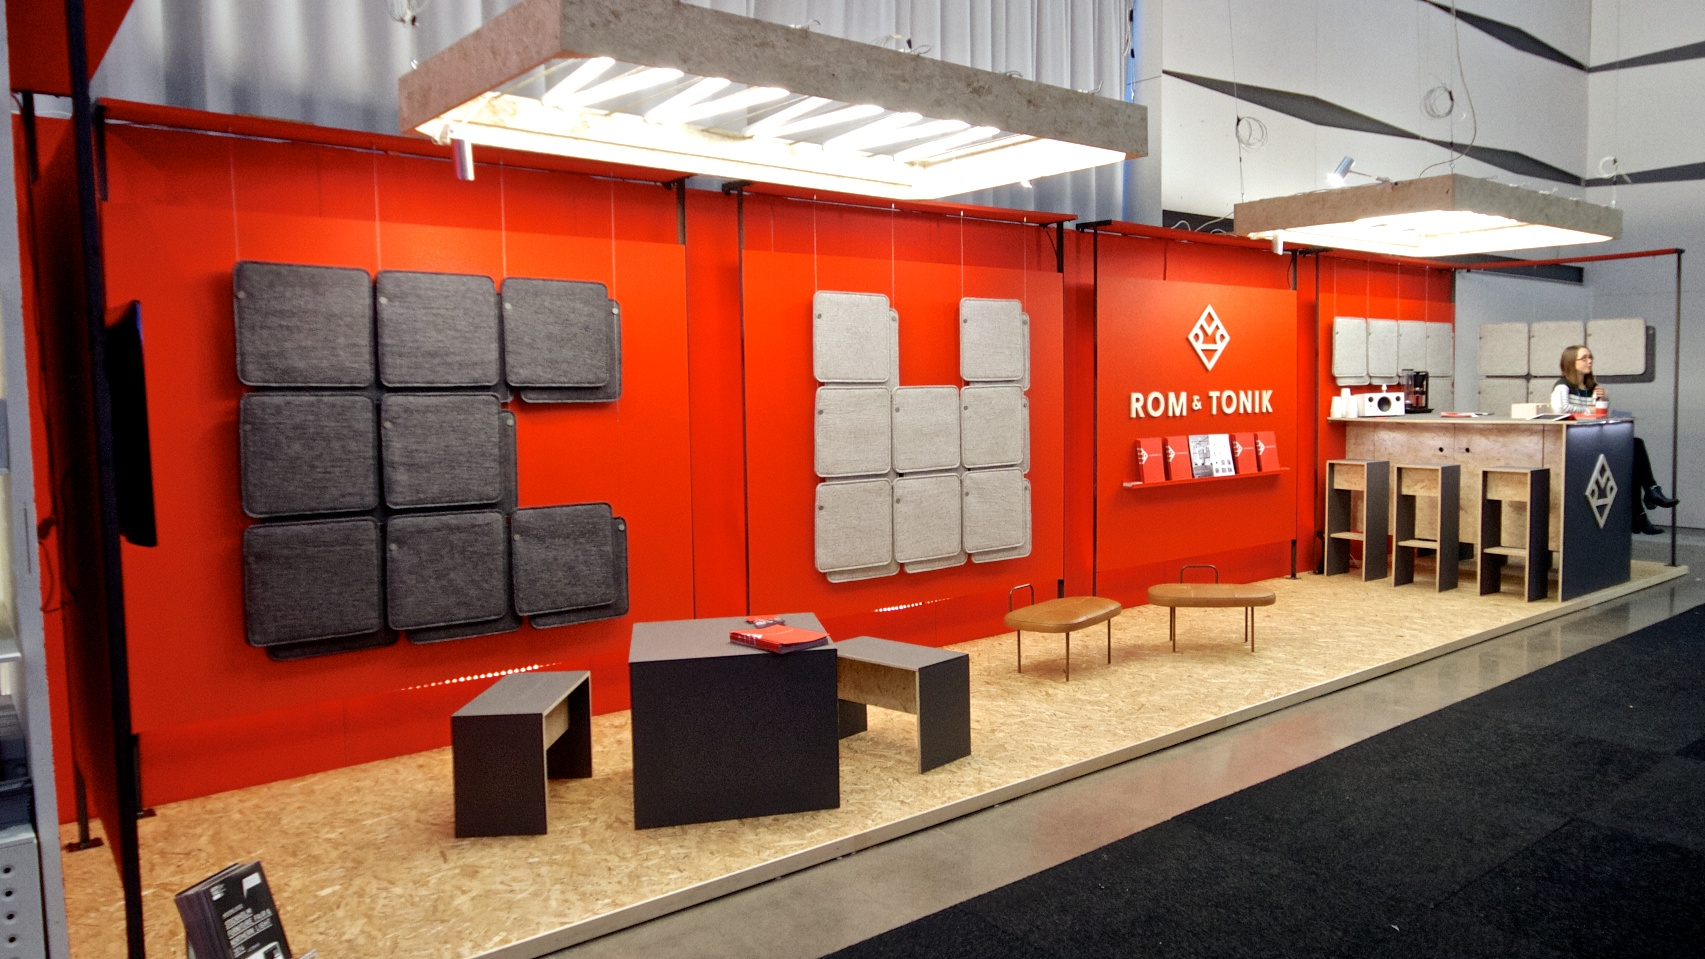 We designed and built the stand ourselves. Quite the extensive project, but we are really happy with the result!